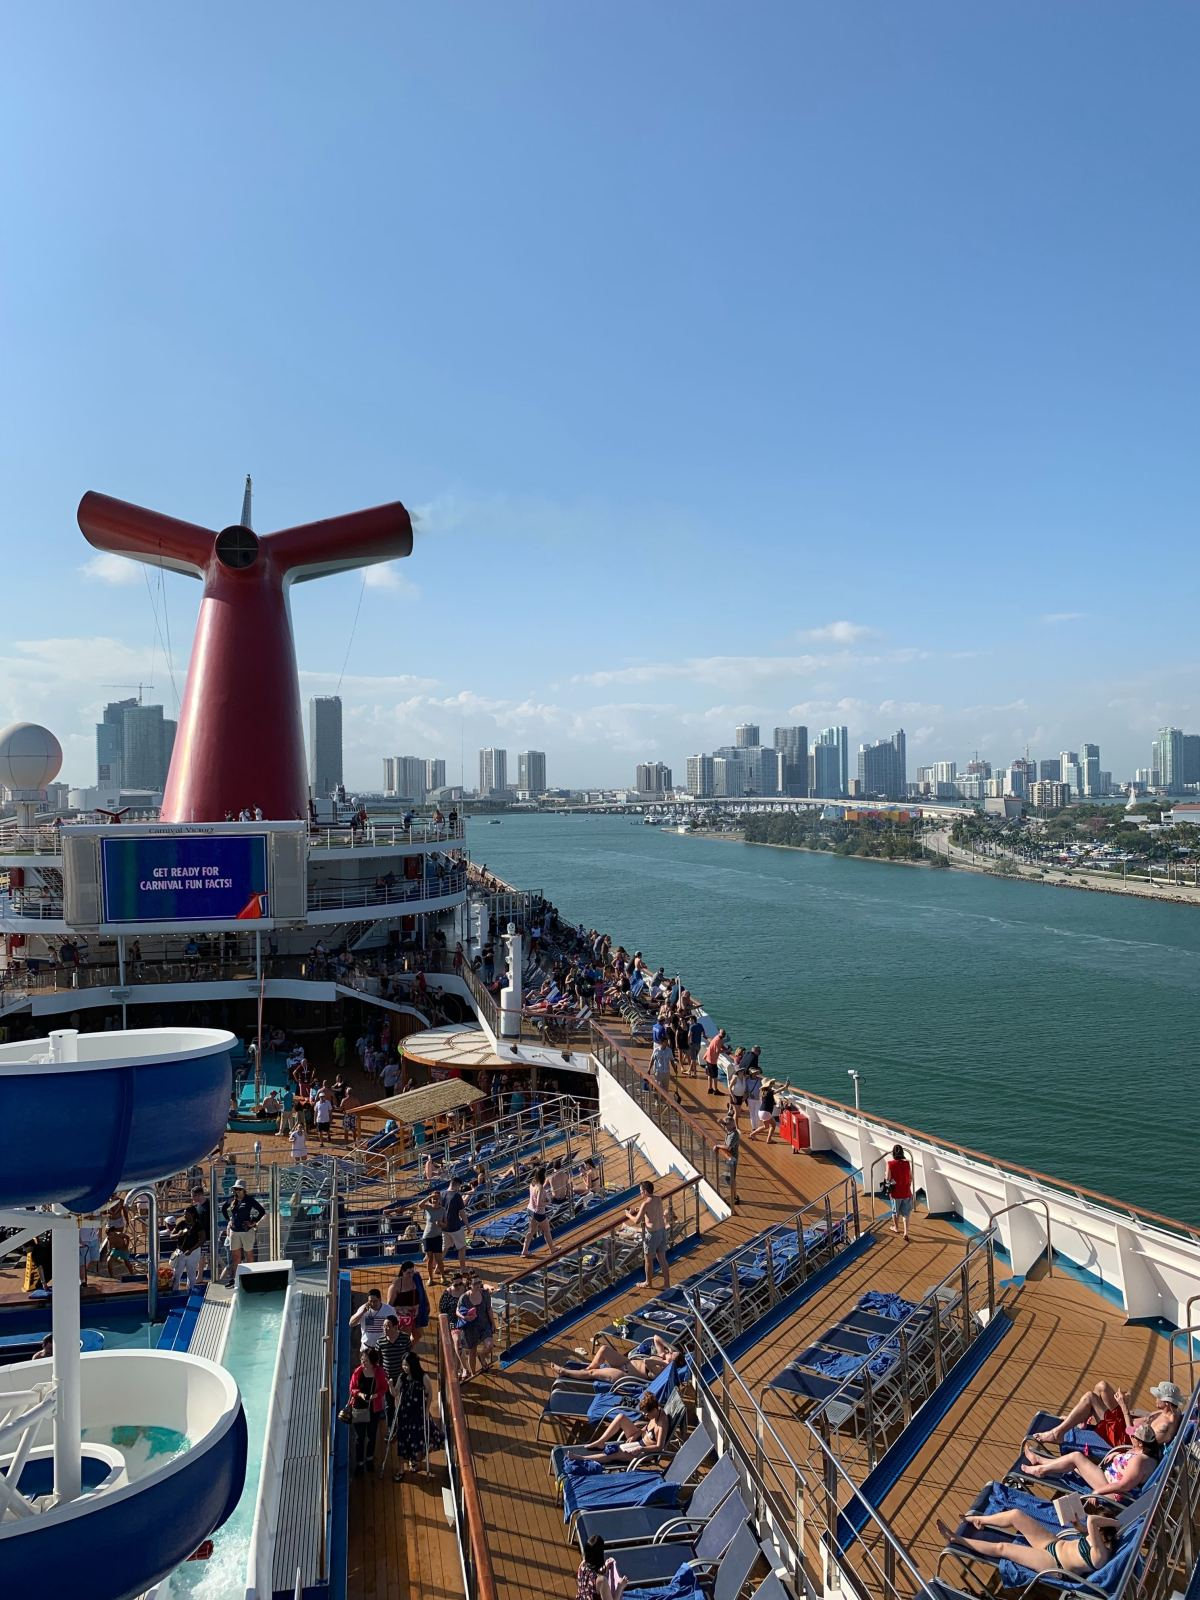 Carnival Victory leaving PortMiami with Miami in the background.